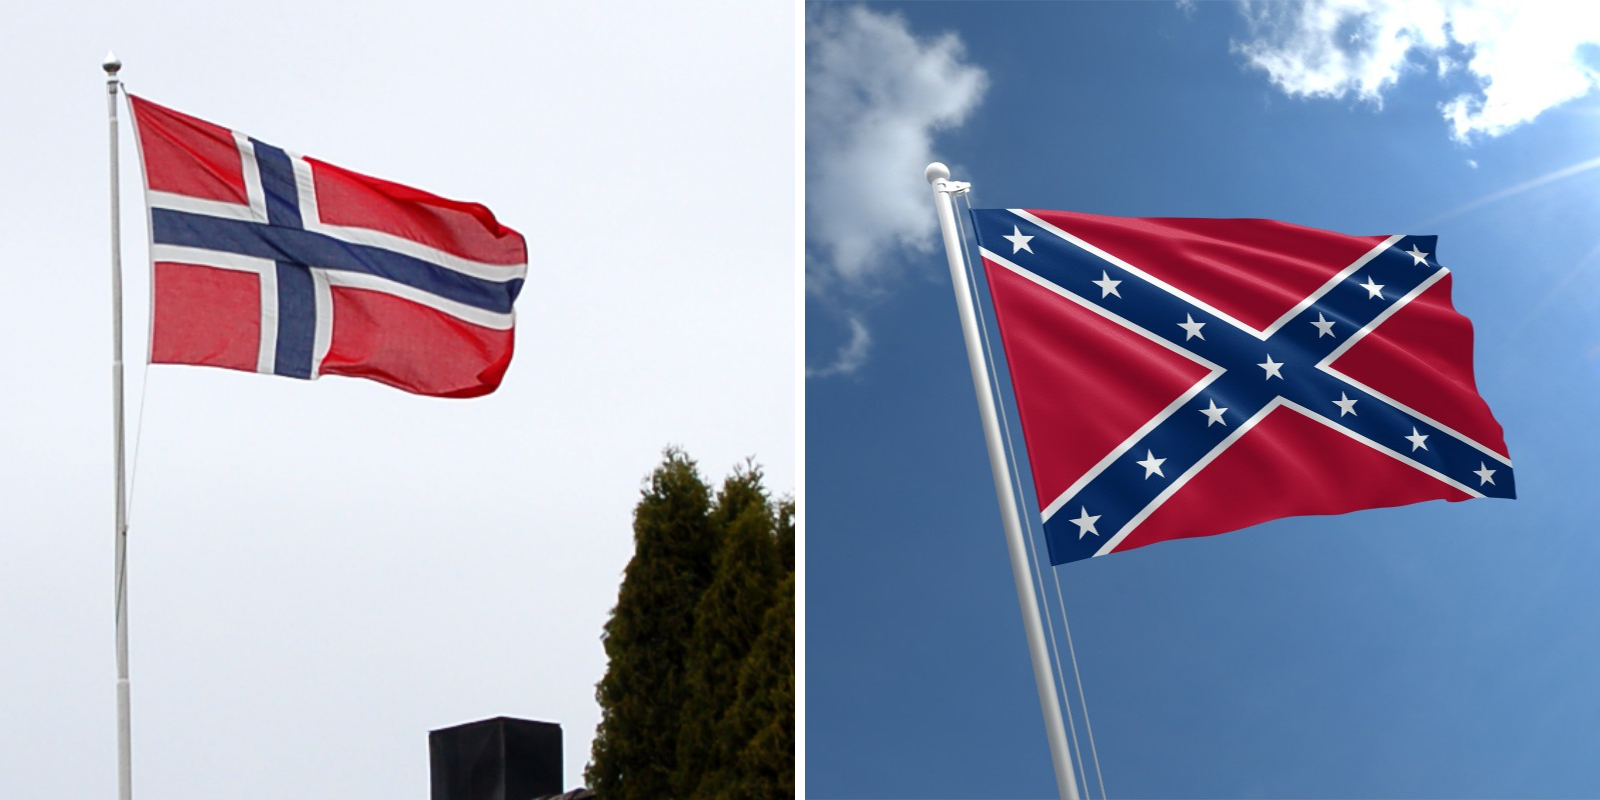 Norwegian flag removed from bed and breakfast after locals think it's a Confederate flag